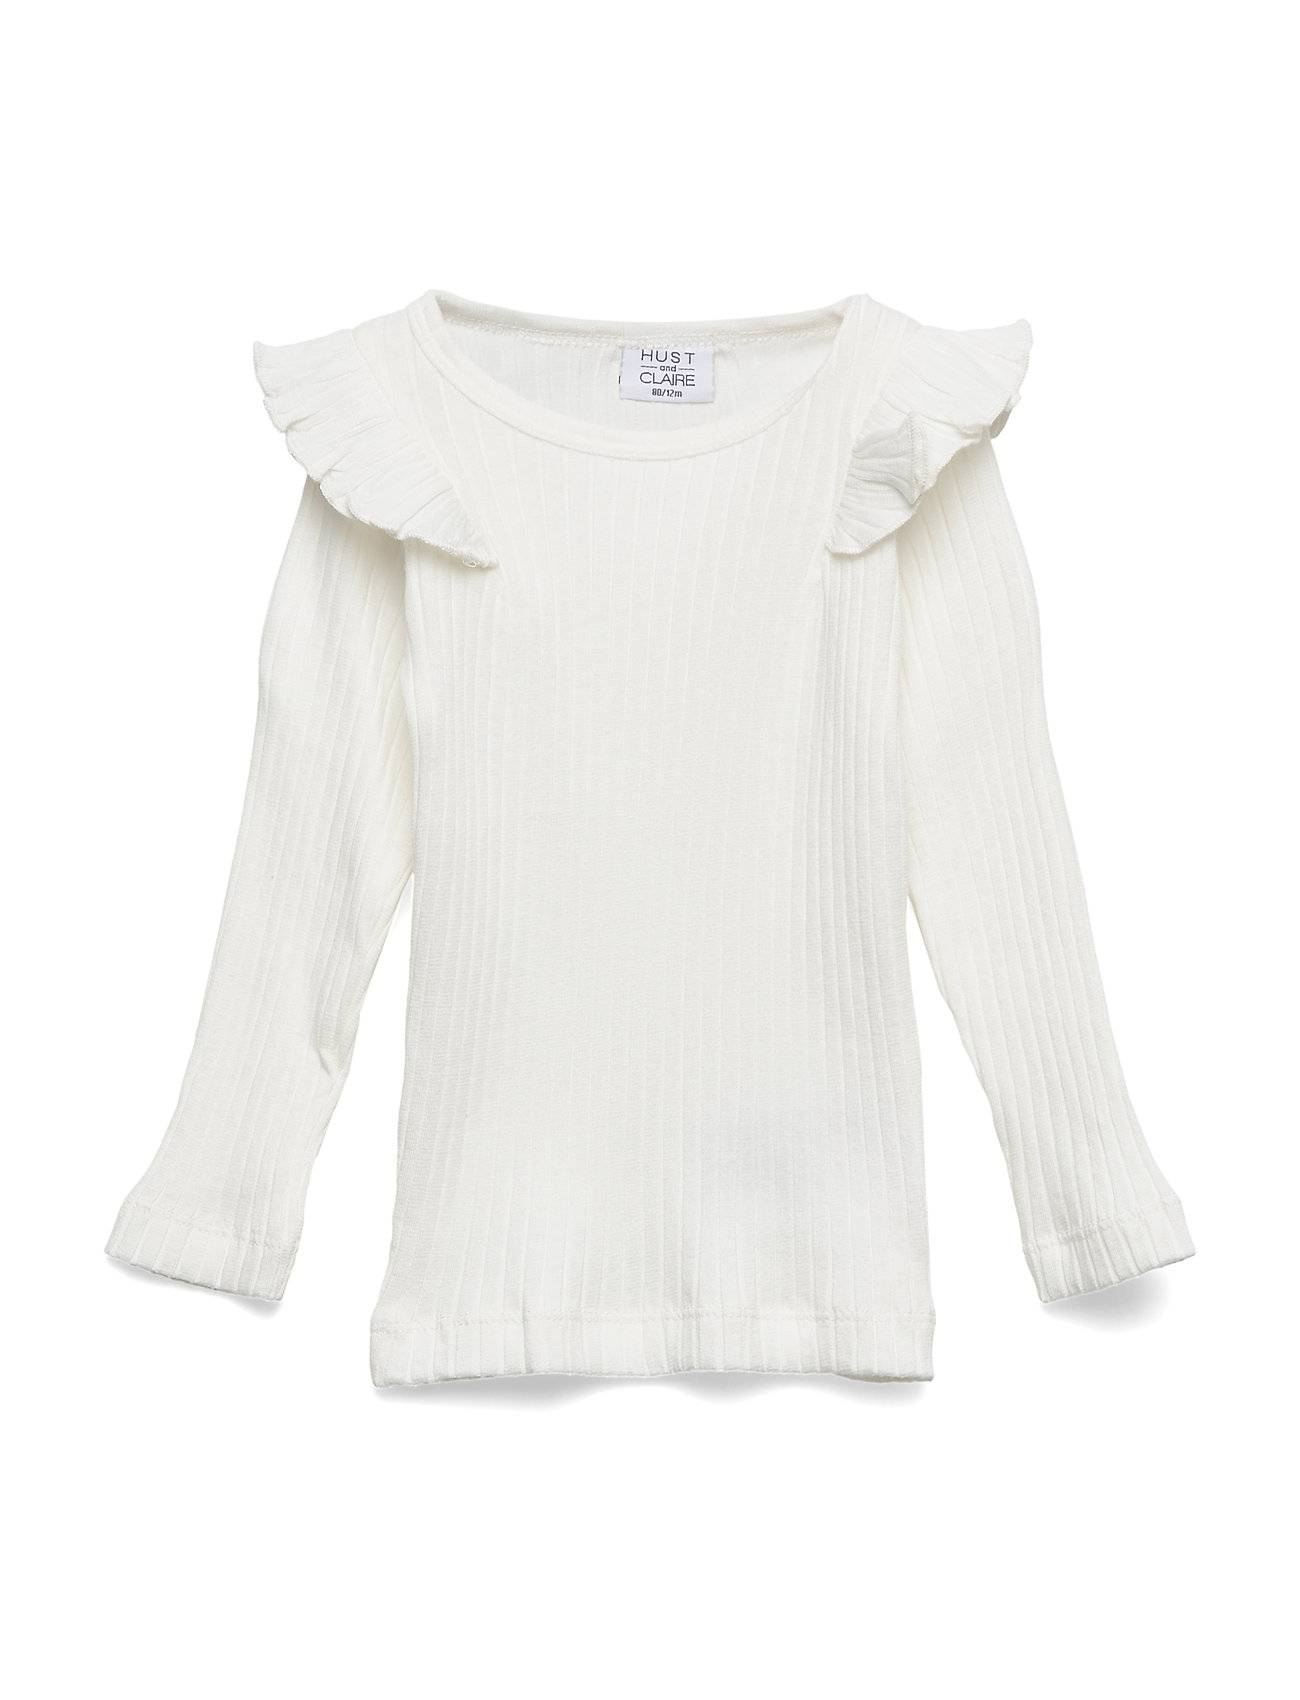 Hust & Claire Alexia - T-Shirt S/S T-shirts Long-sleeved T-shirts Valkoinen Hust & Claire